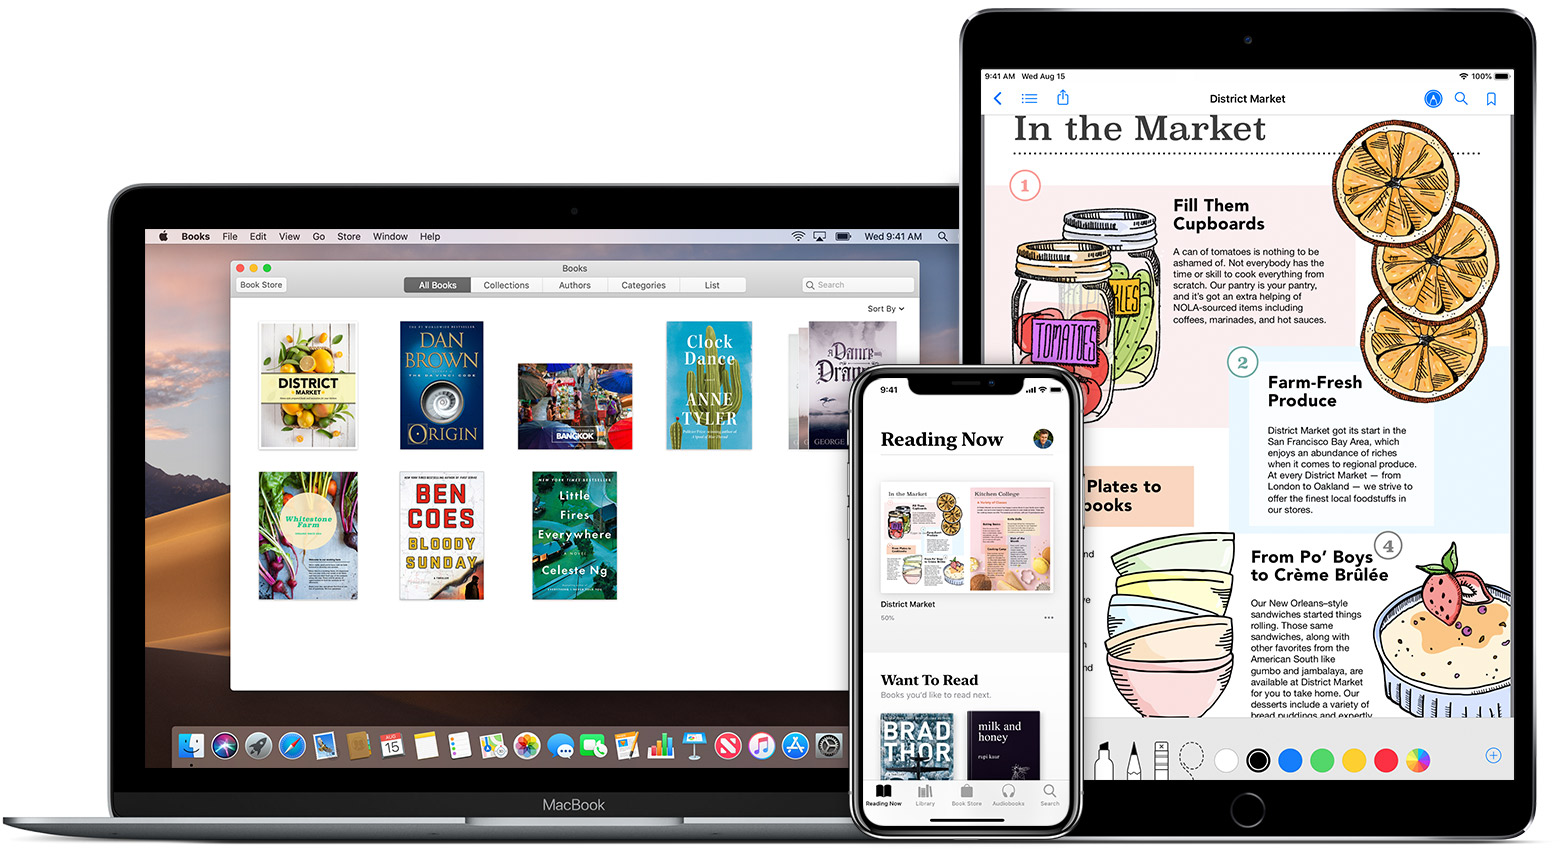 Save And Edit Pdfs On Your Iphone Ipad Or Ipod Touch With The Books